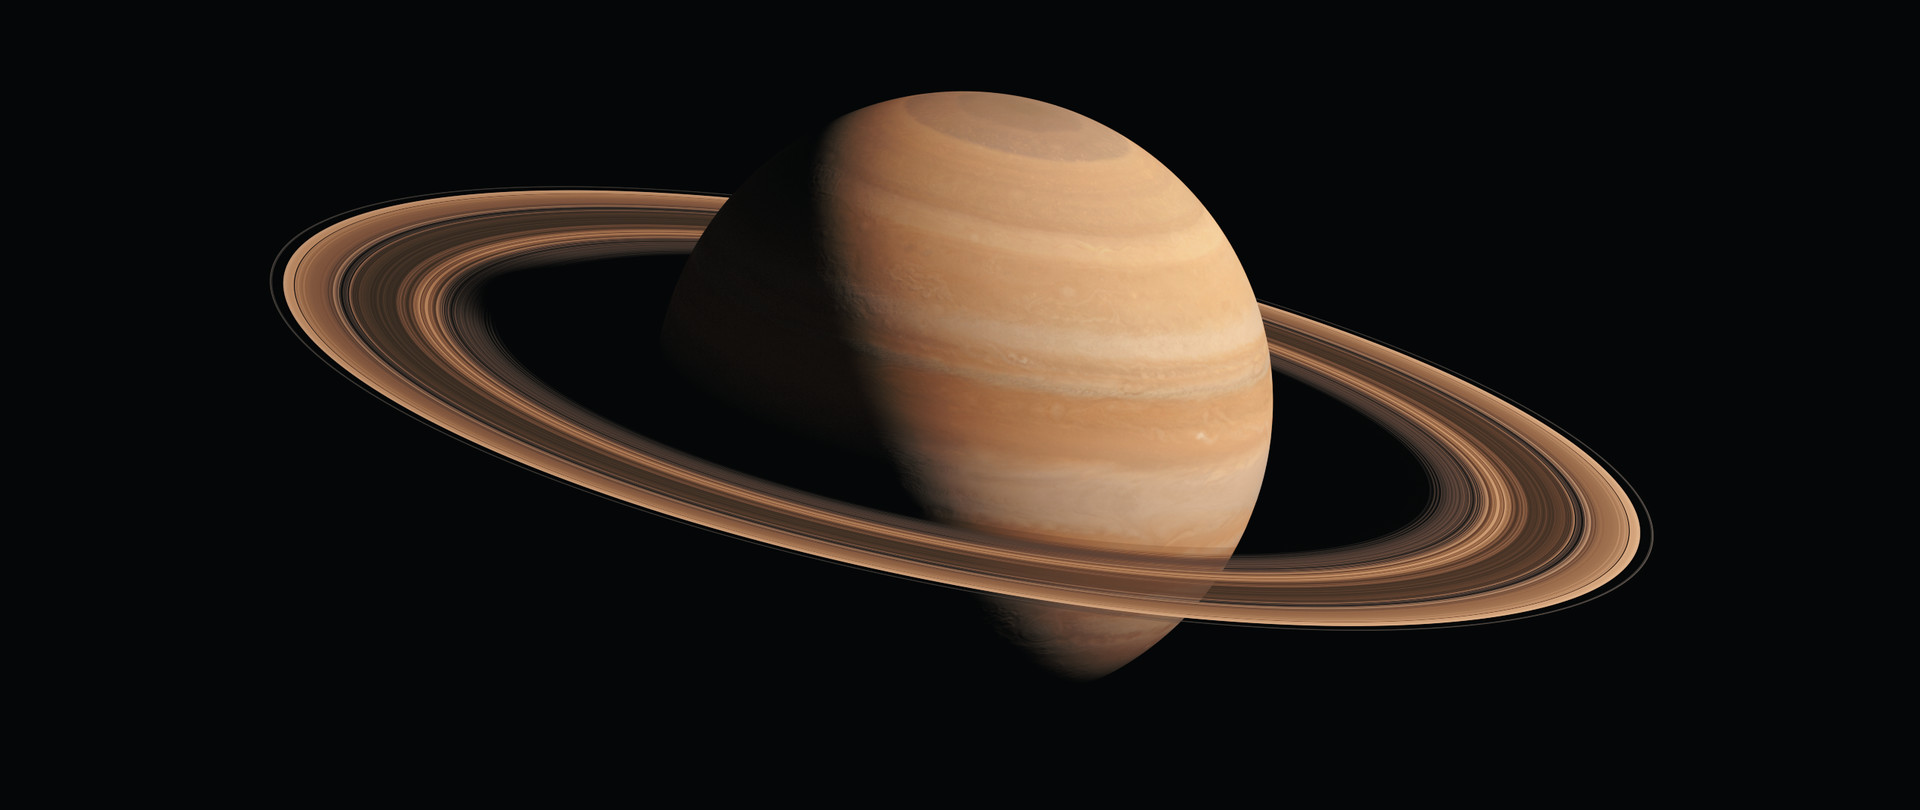 what color is saturn - HD1920×810